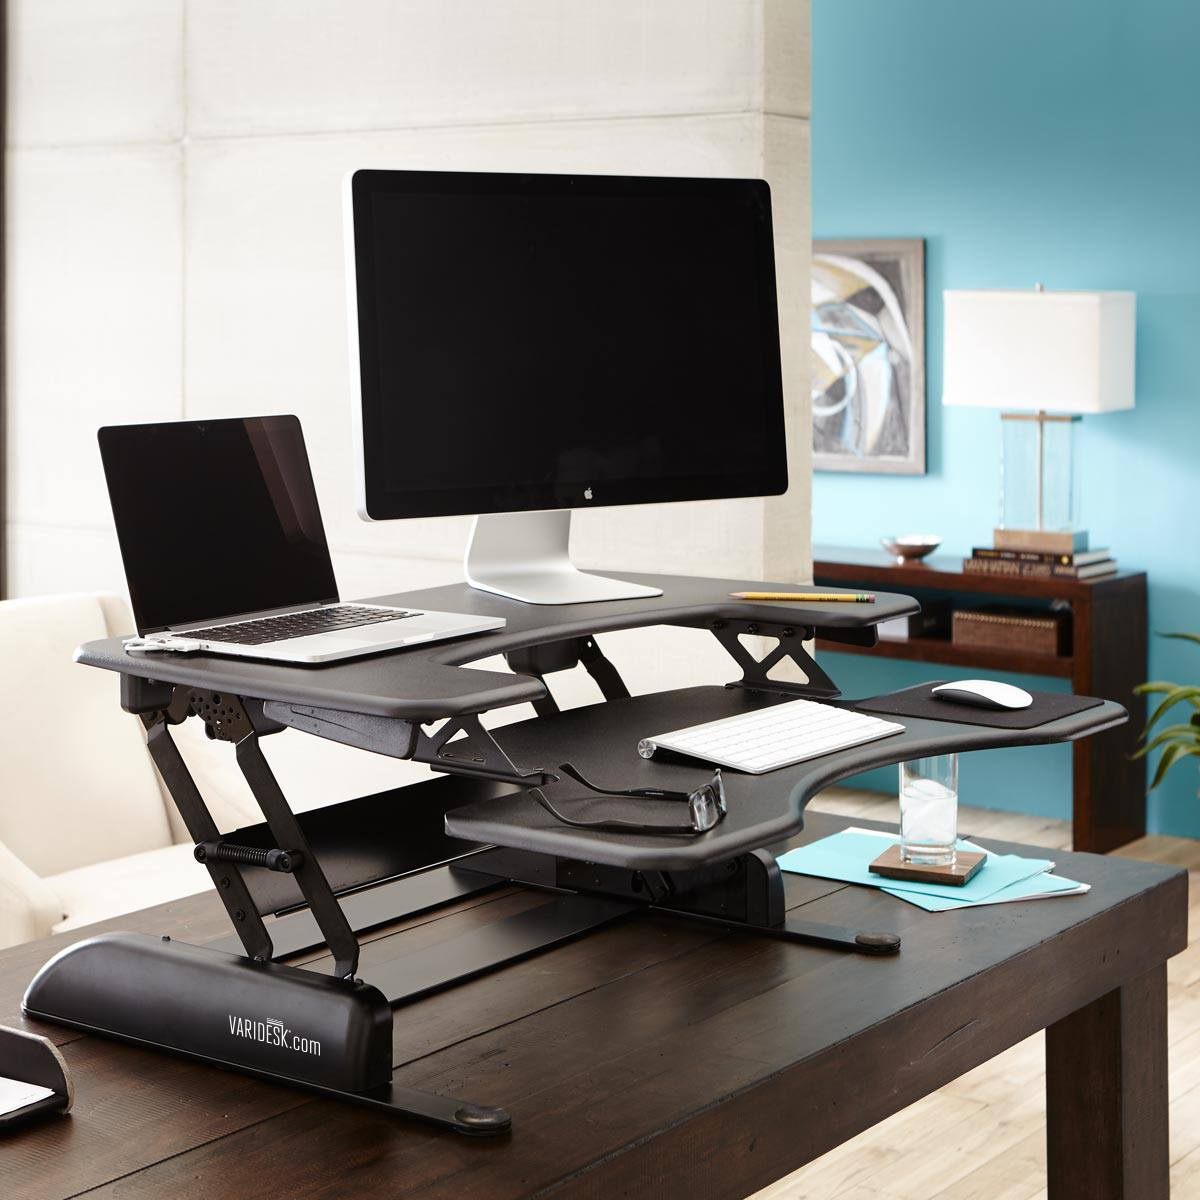 chair stand up trick folding table chairs dunelm varidesk is expensive they worth it well that depends 4 models reviewed